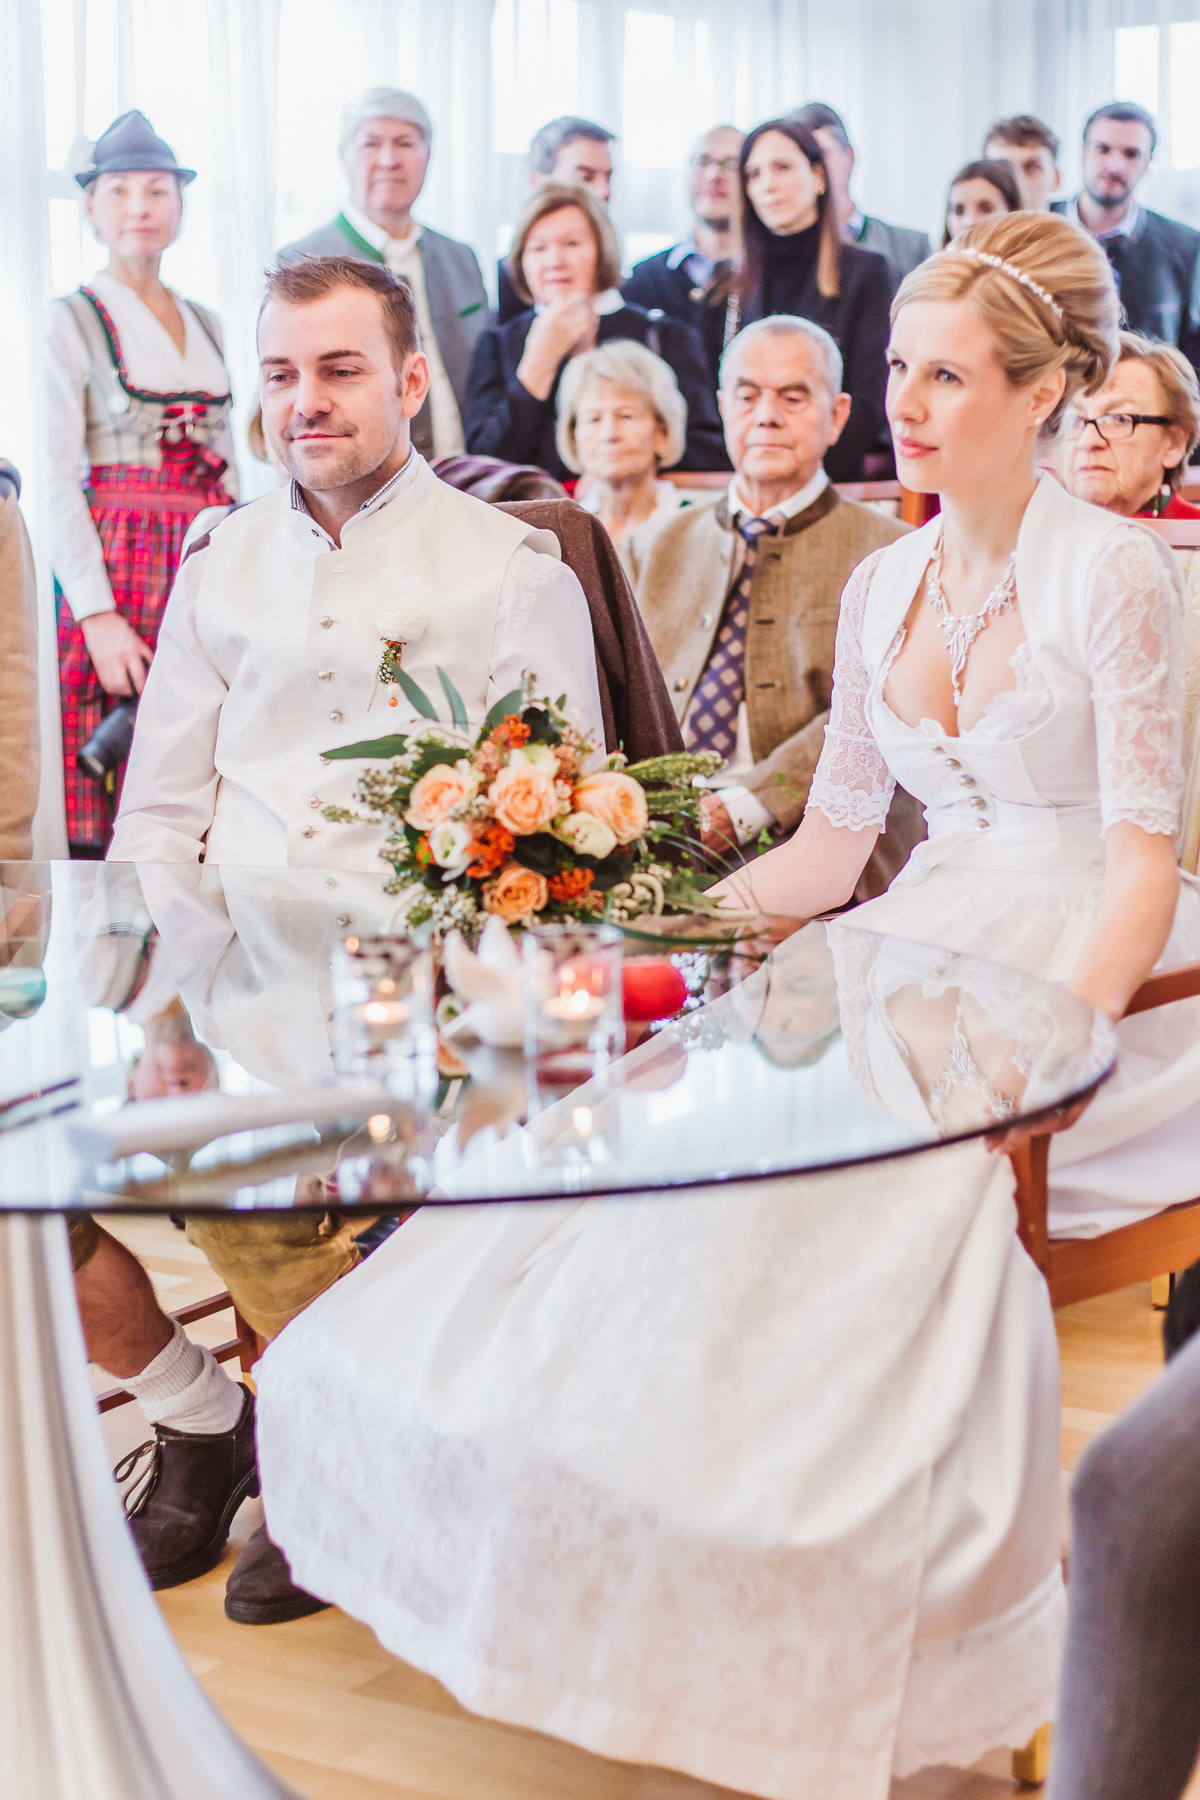 Claudia Sittig Photography - Couple - Hochzeit  Wedding Michaela und Michael - 15d